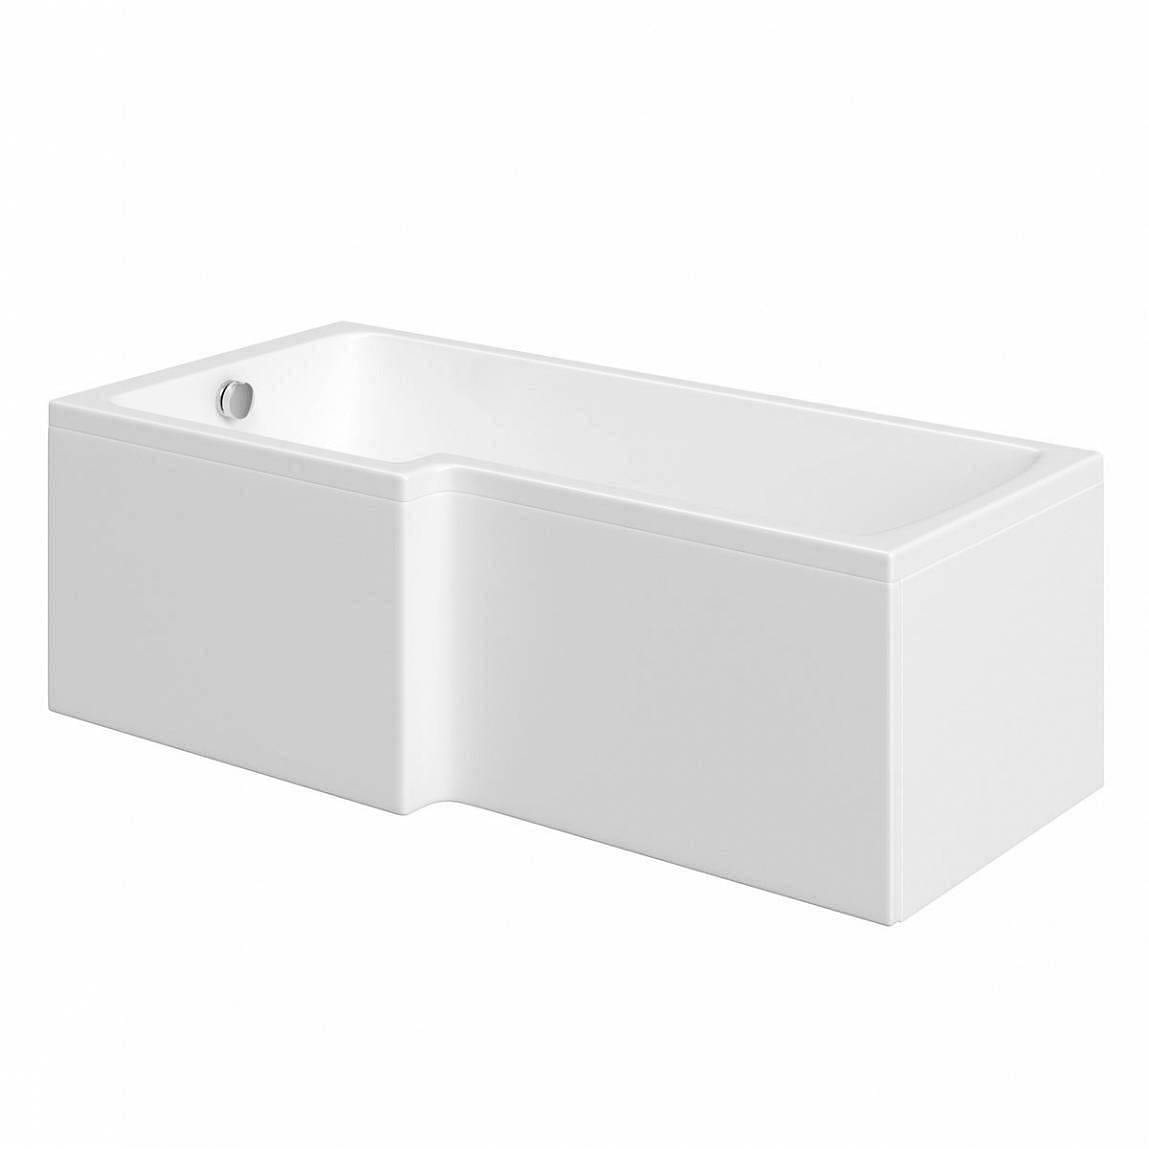 Orchard L shaped left handed shower bath